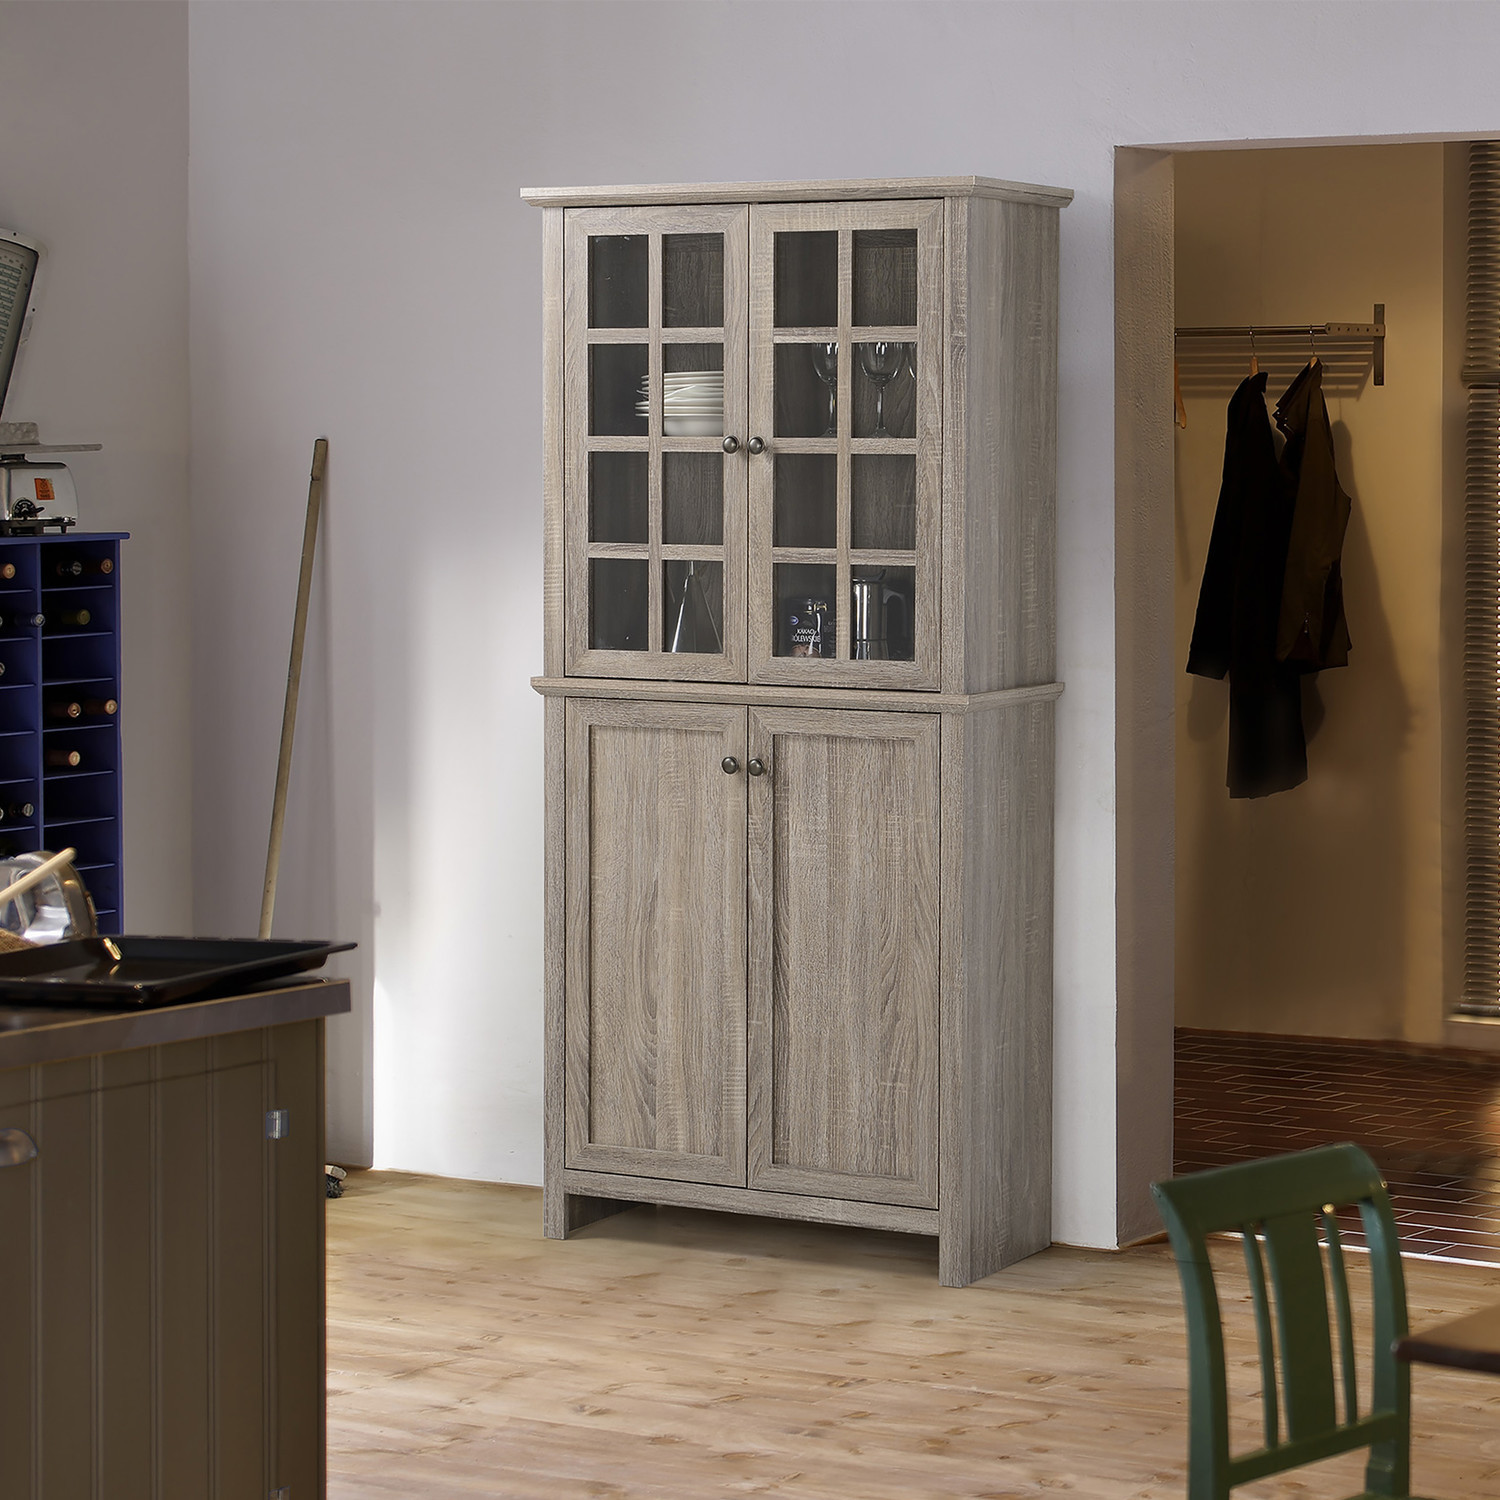 Storage Cabinet With 2 Glass Doors Kitchen Dining Room